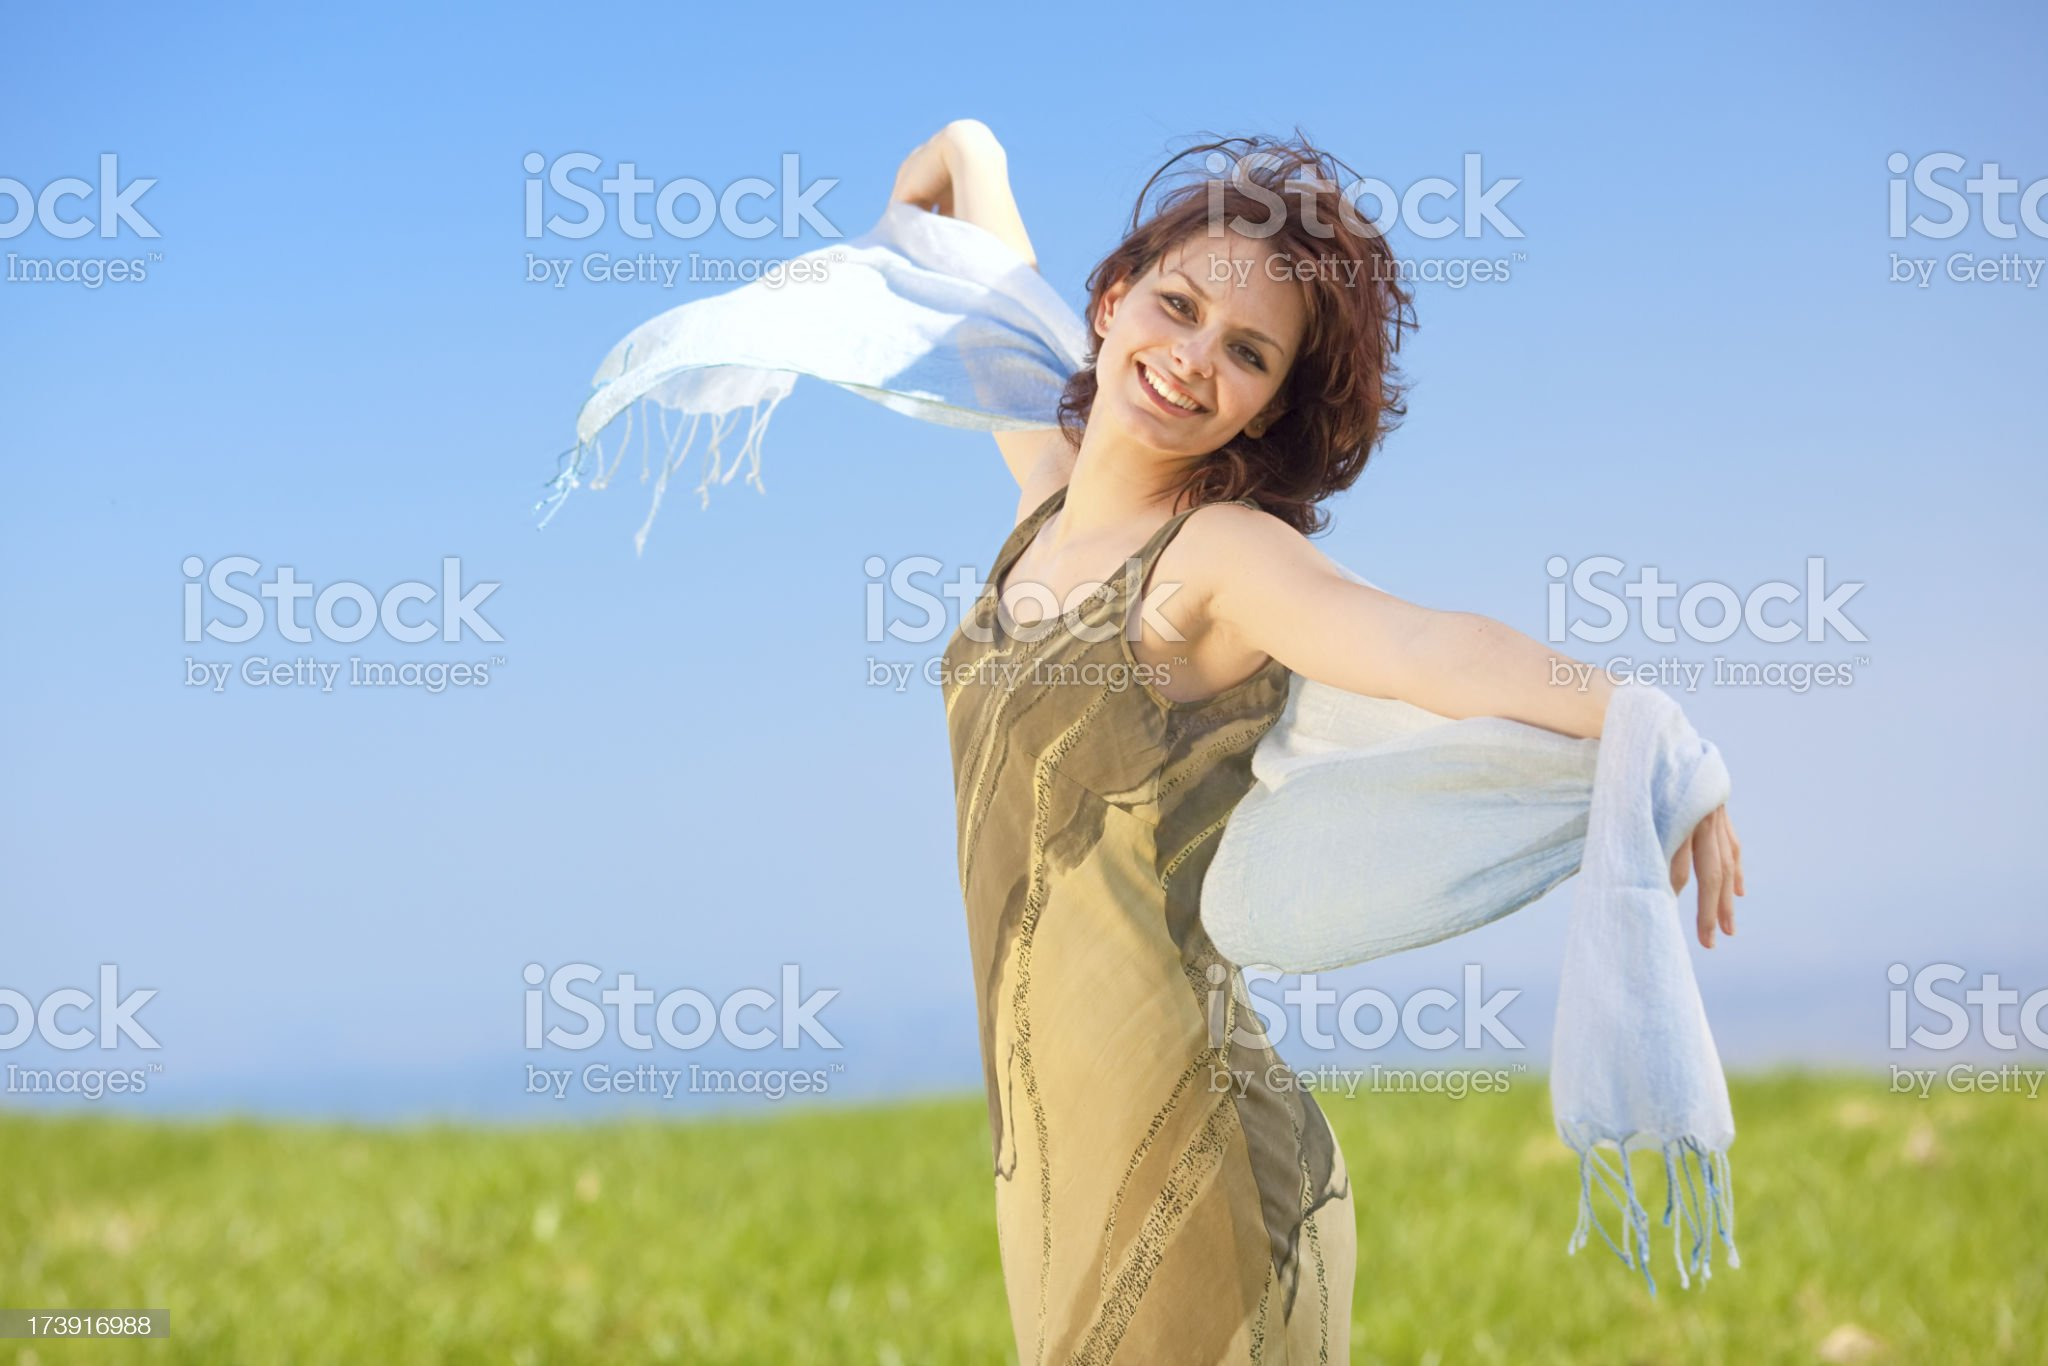 beautiful young girl freedom smile in sunny day outdoor royalty-free stock photo